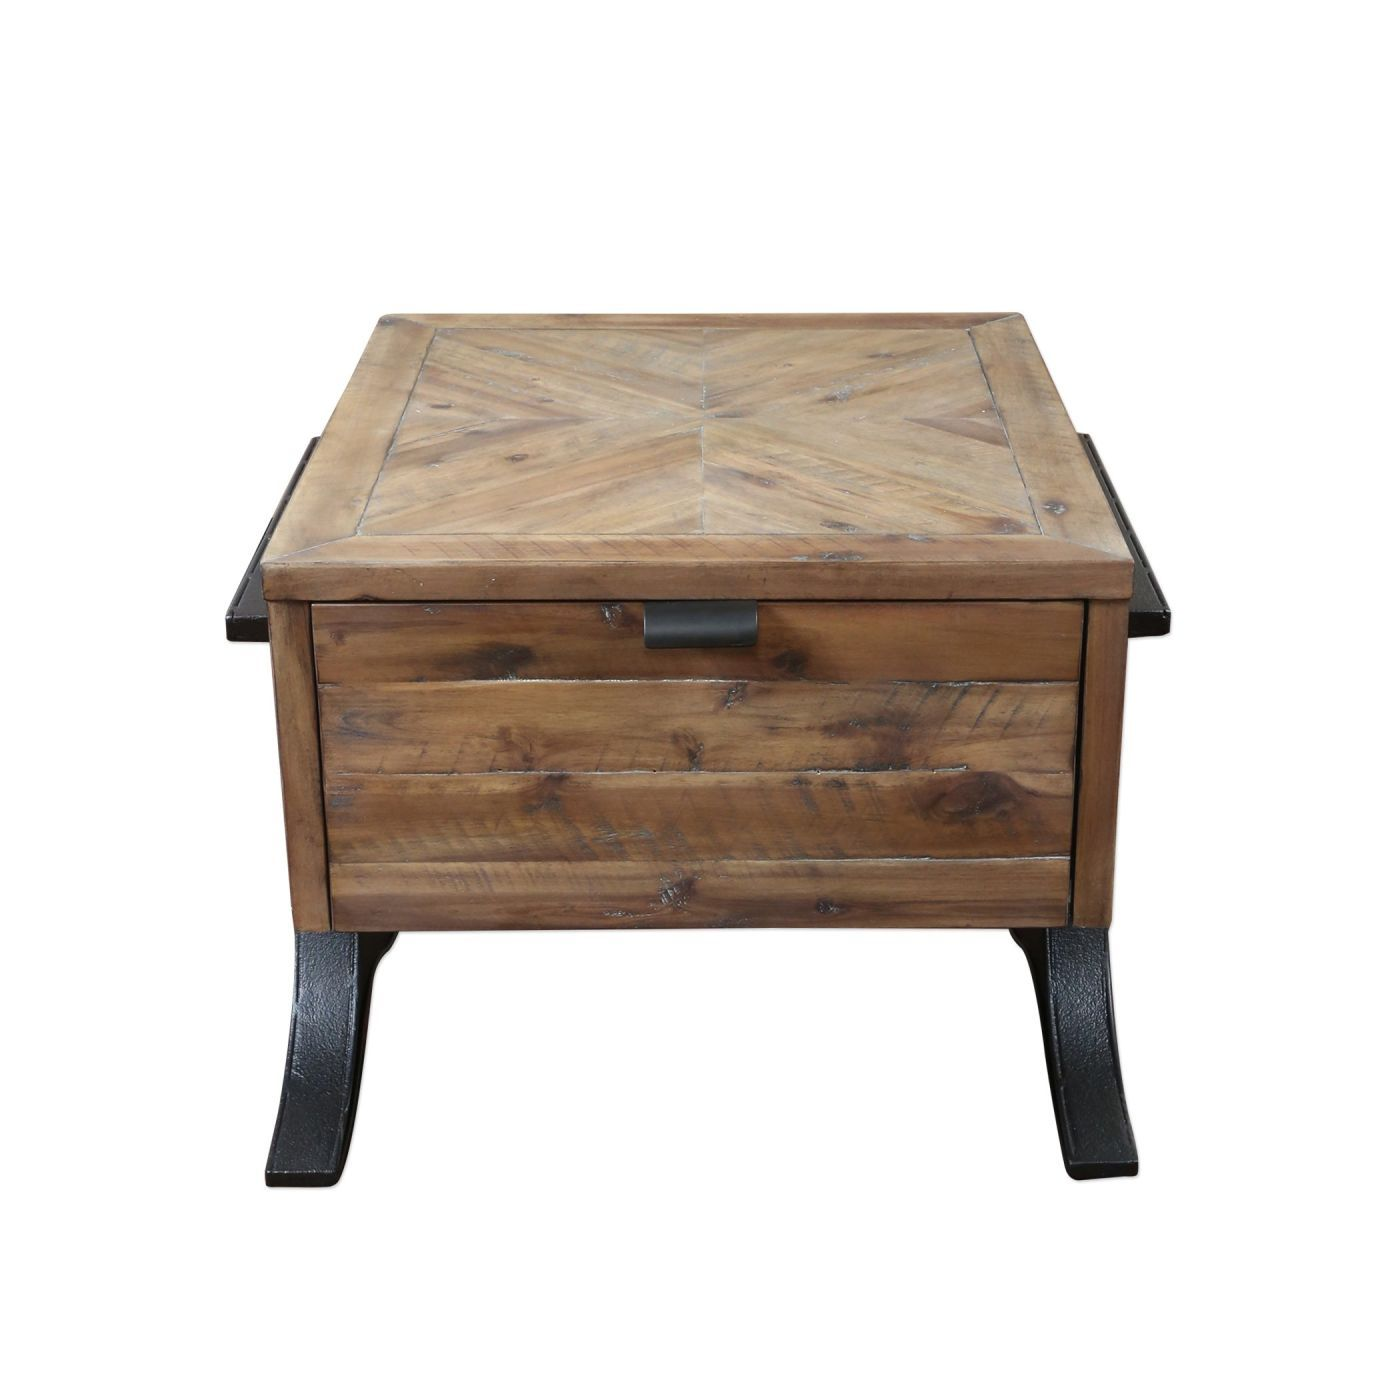 uttermost utt brodie natural wood accent table side tables console chest drawers counter high dining hayworth furniture vanity round and metal coffee kitchen work bedroom lamp